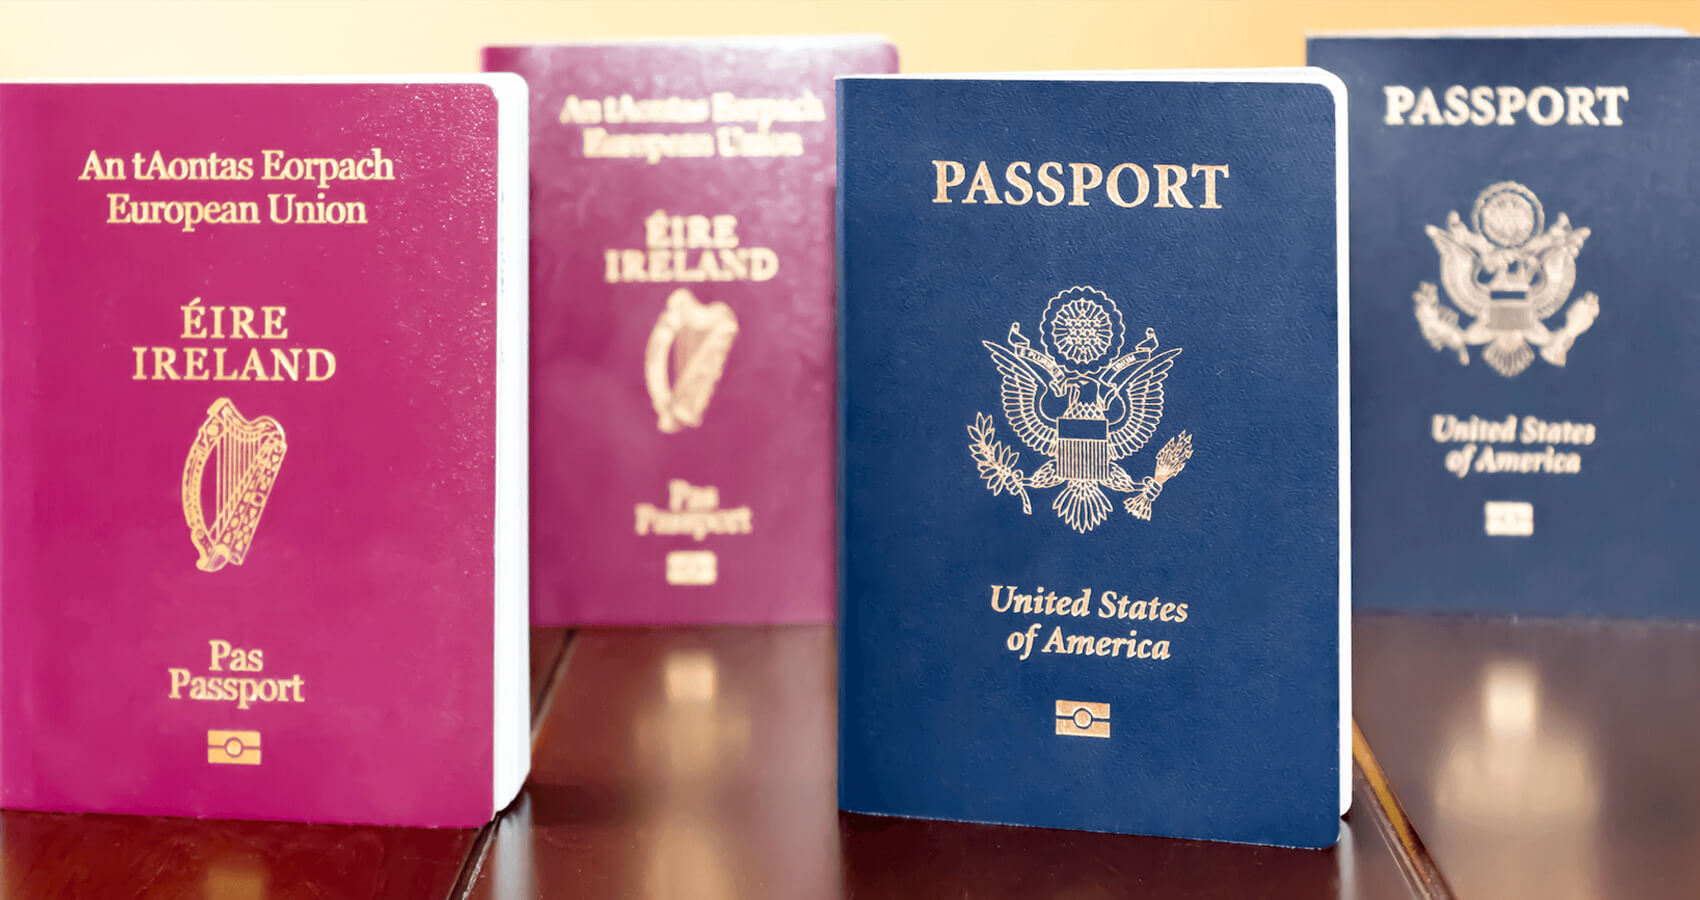 Looking For a Second Passport?  As the American passport loses prestige, some are looking to other countries. By Ashlea Halpern